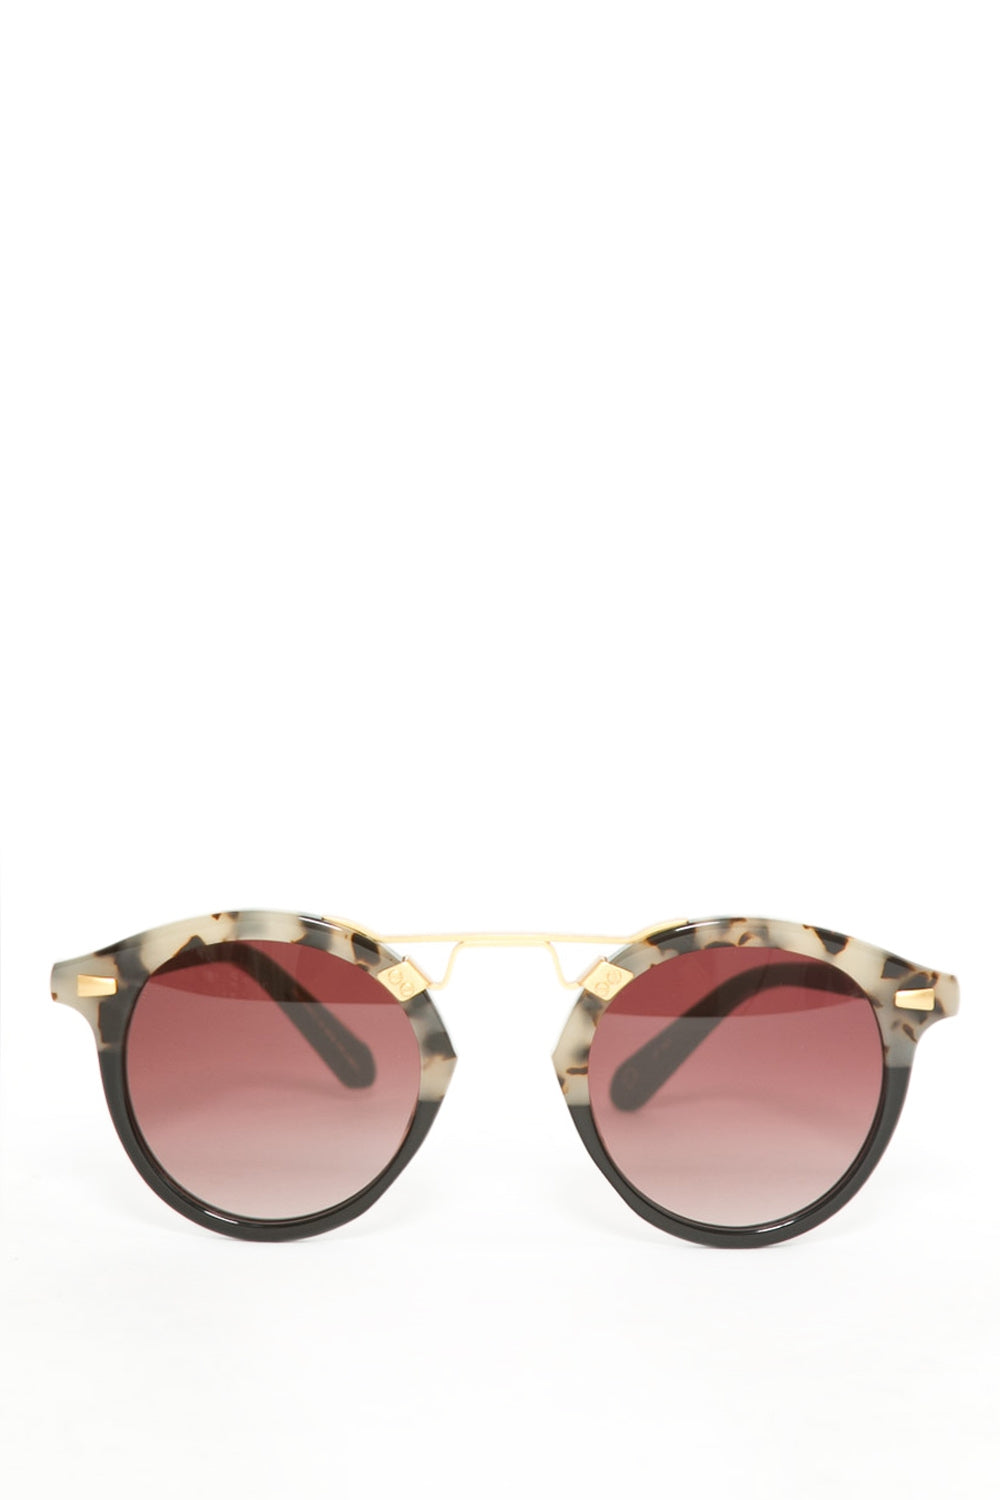 KREWESt. Louis II Sunglasses17883